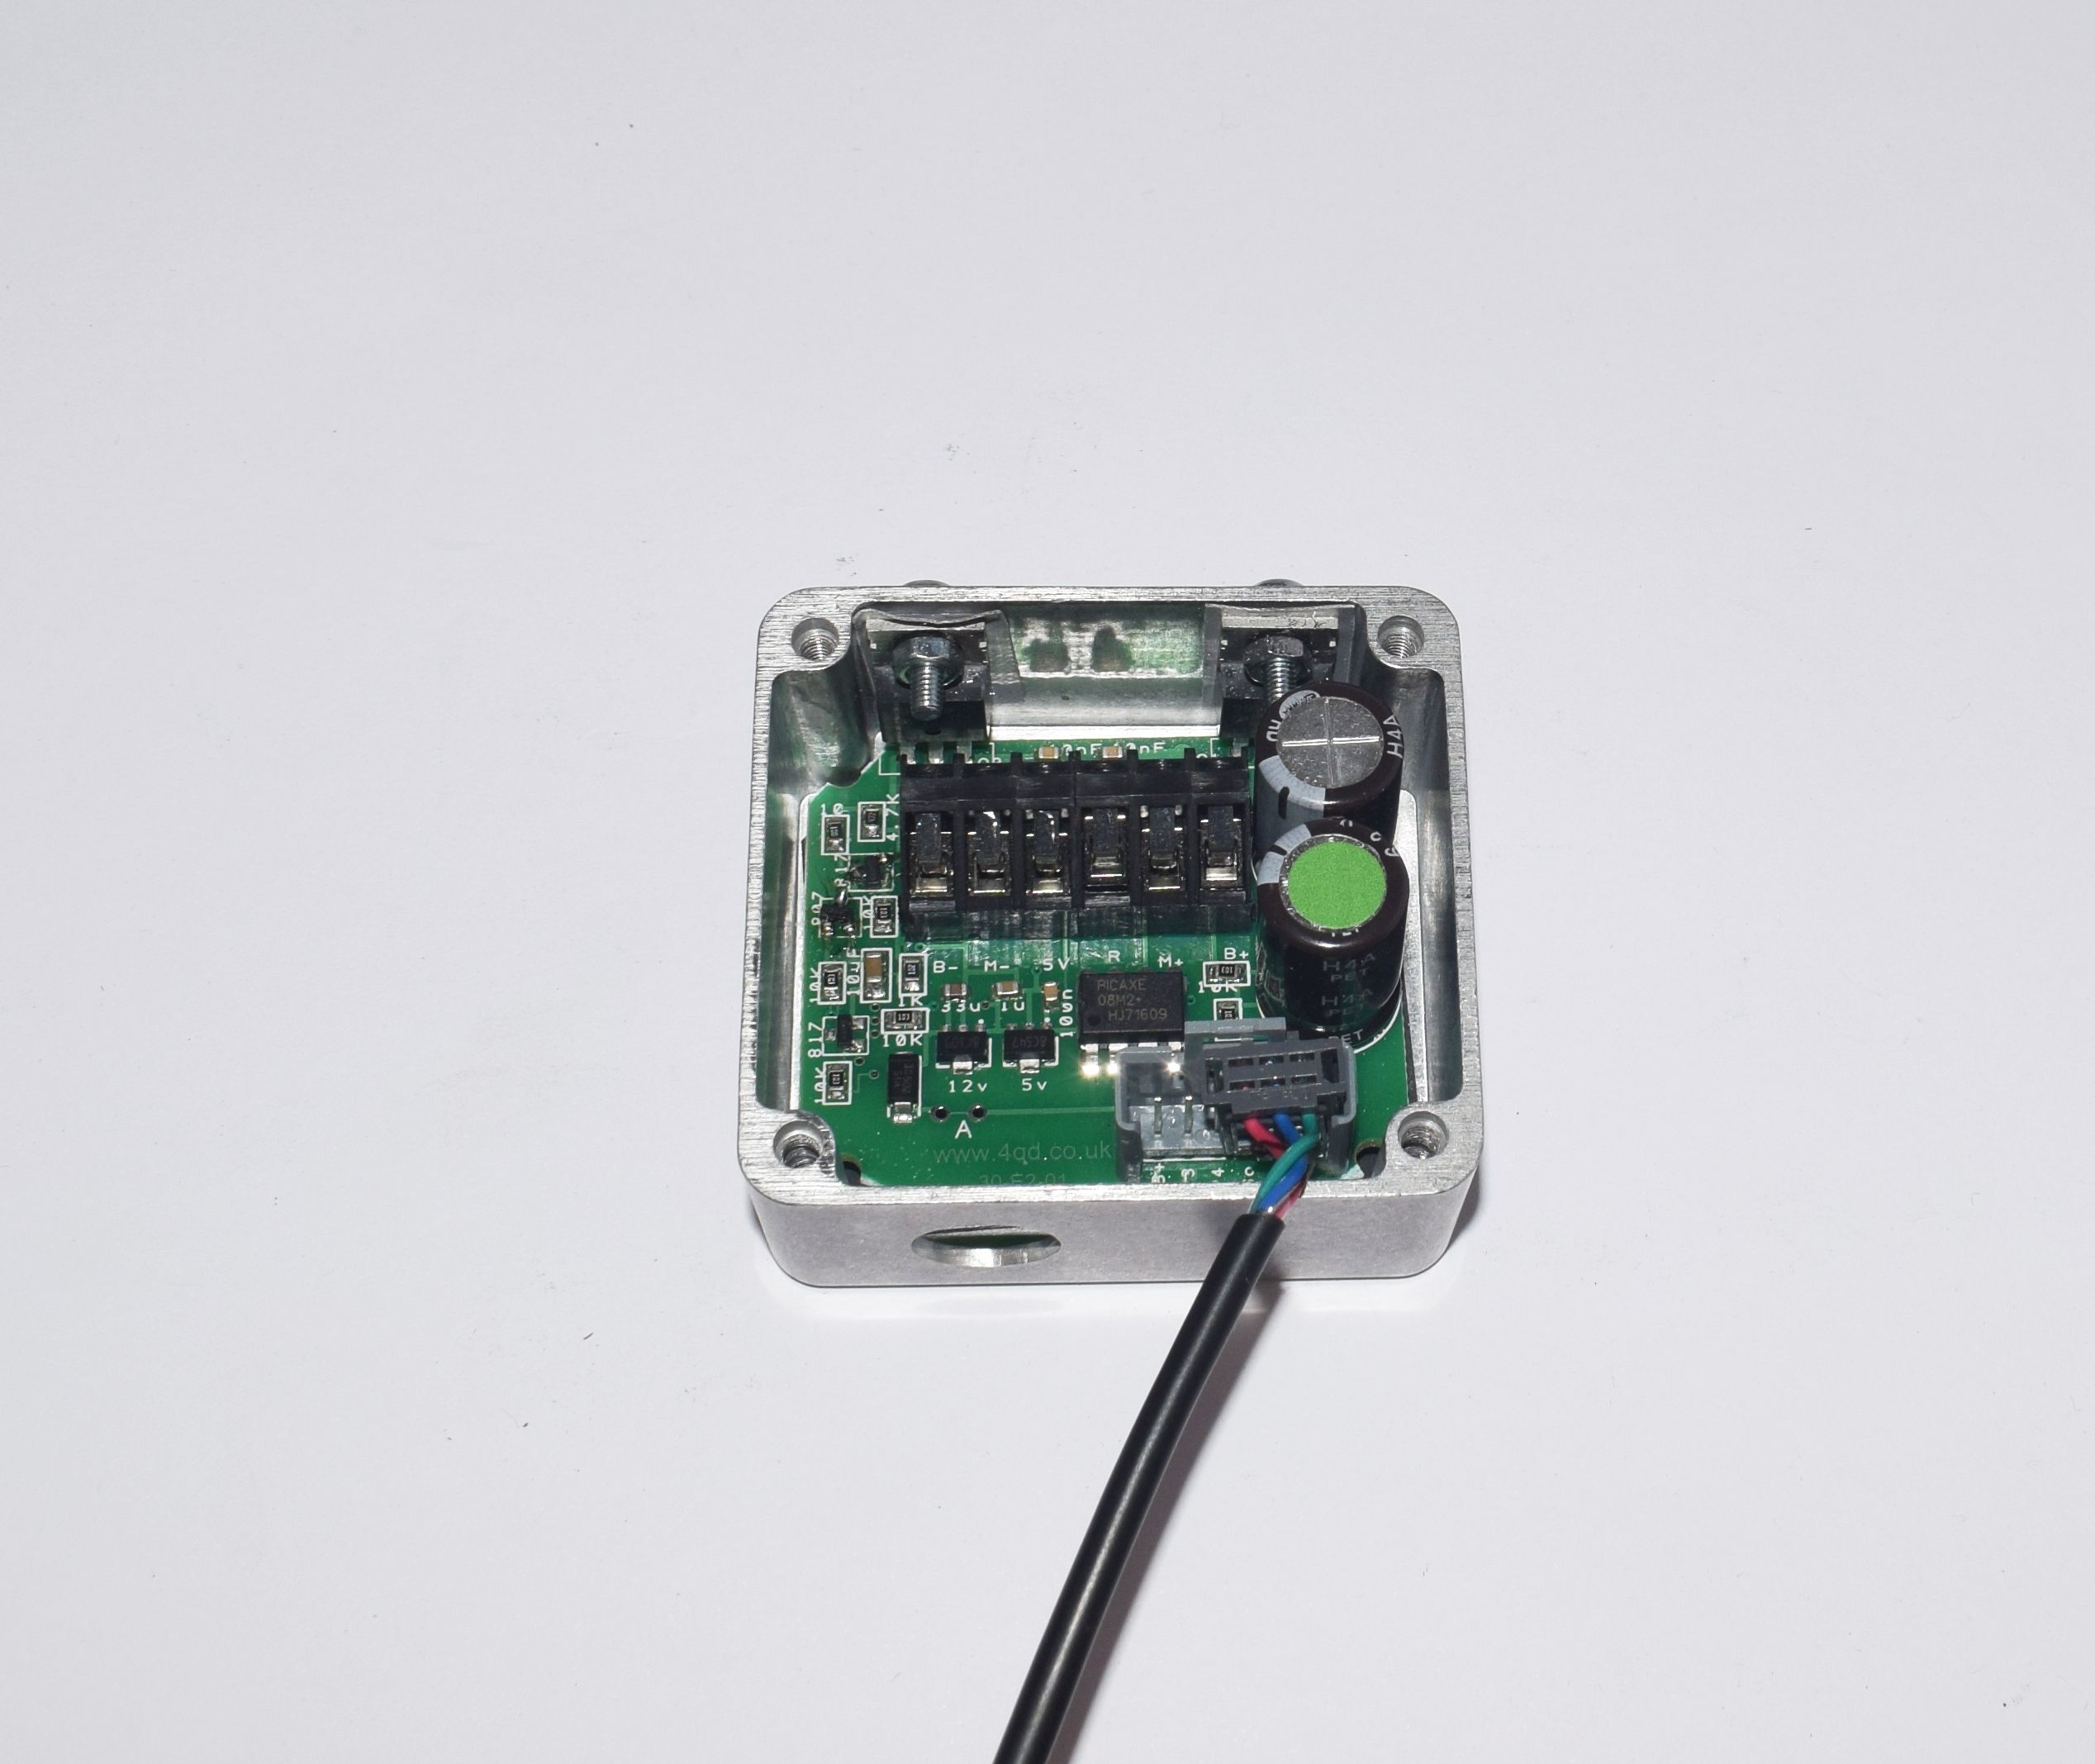 SST-031 with programming lead connected